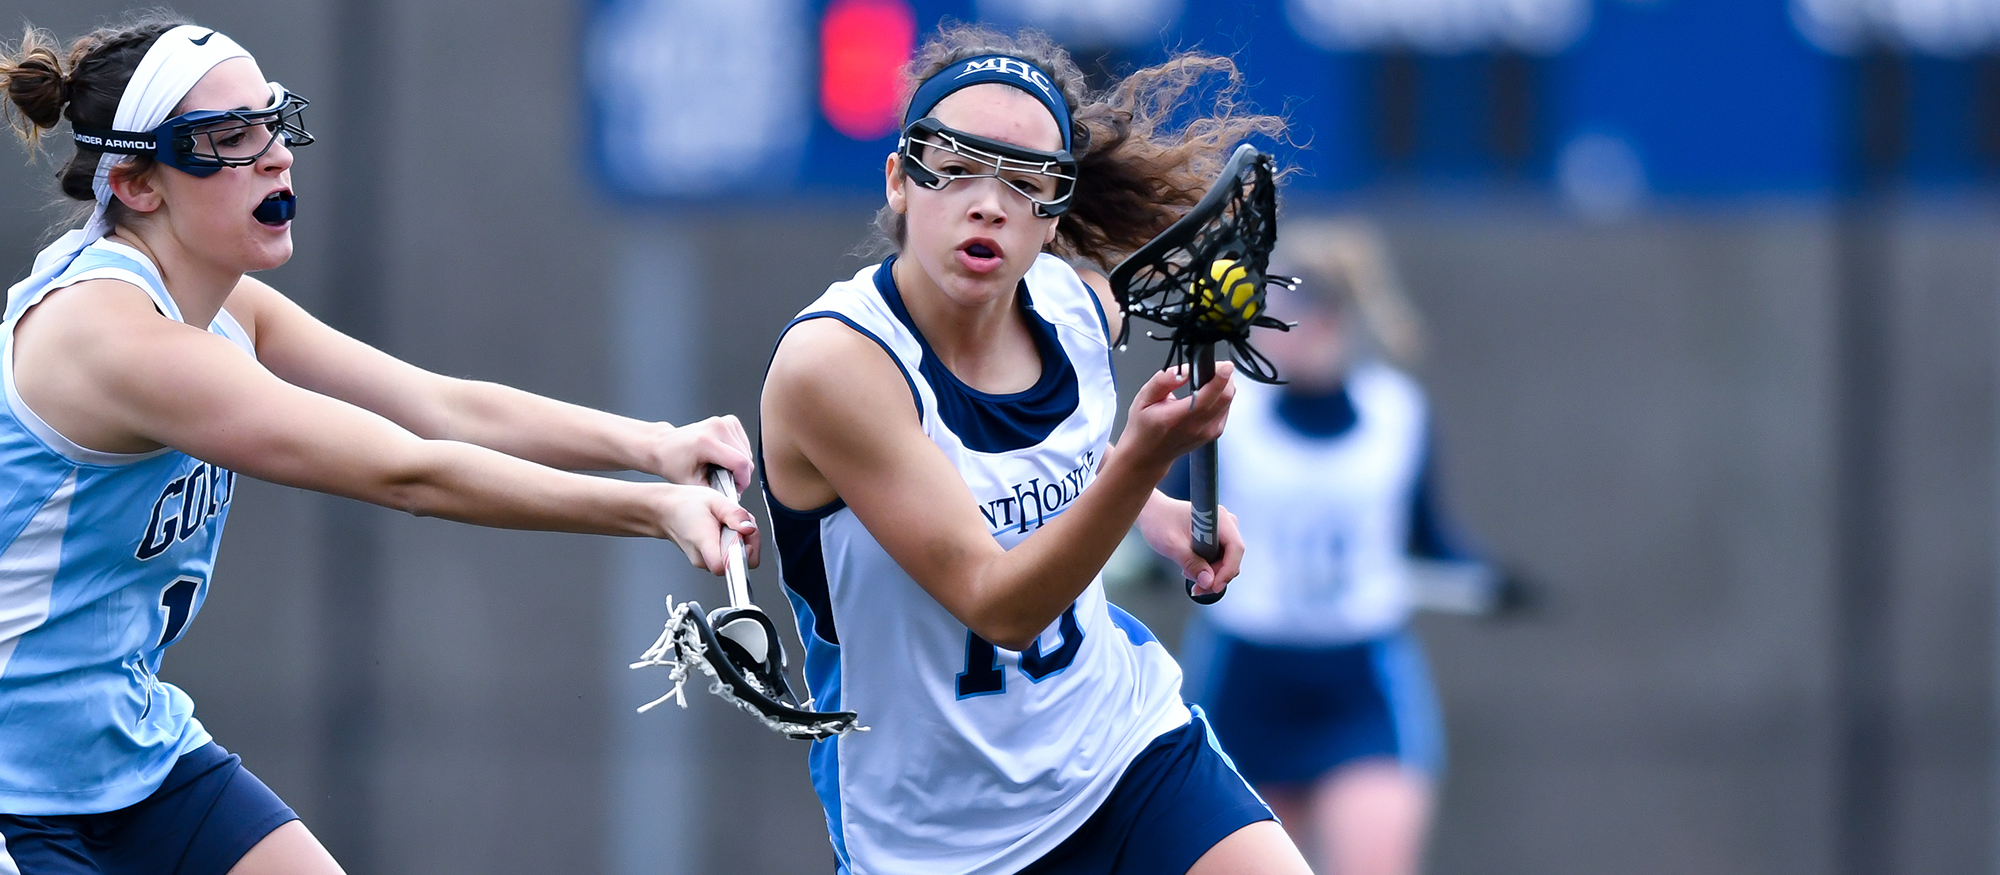 Action photo of Lyons lacrosse player, Julianna Rankin.